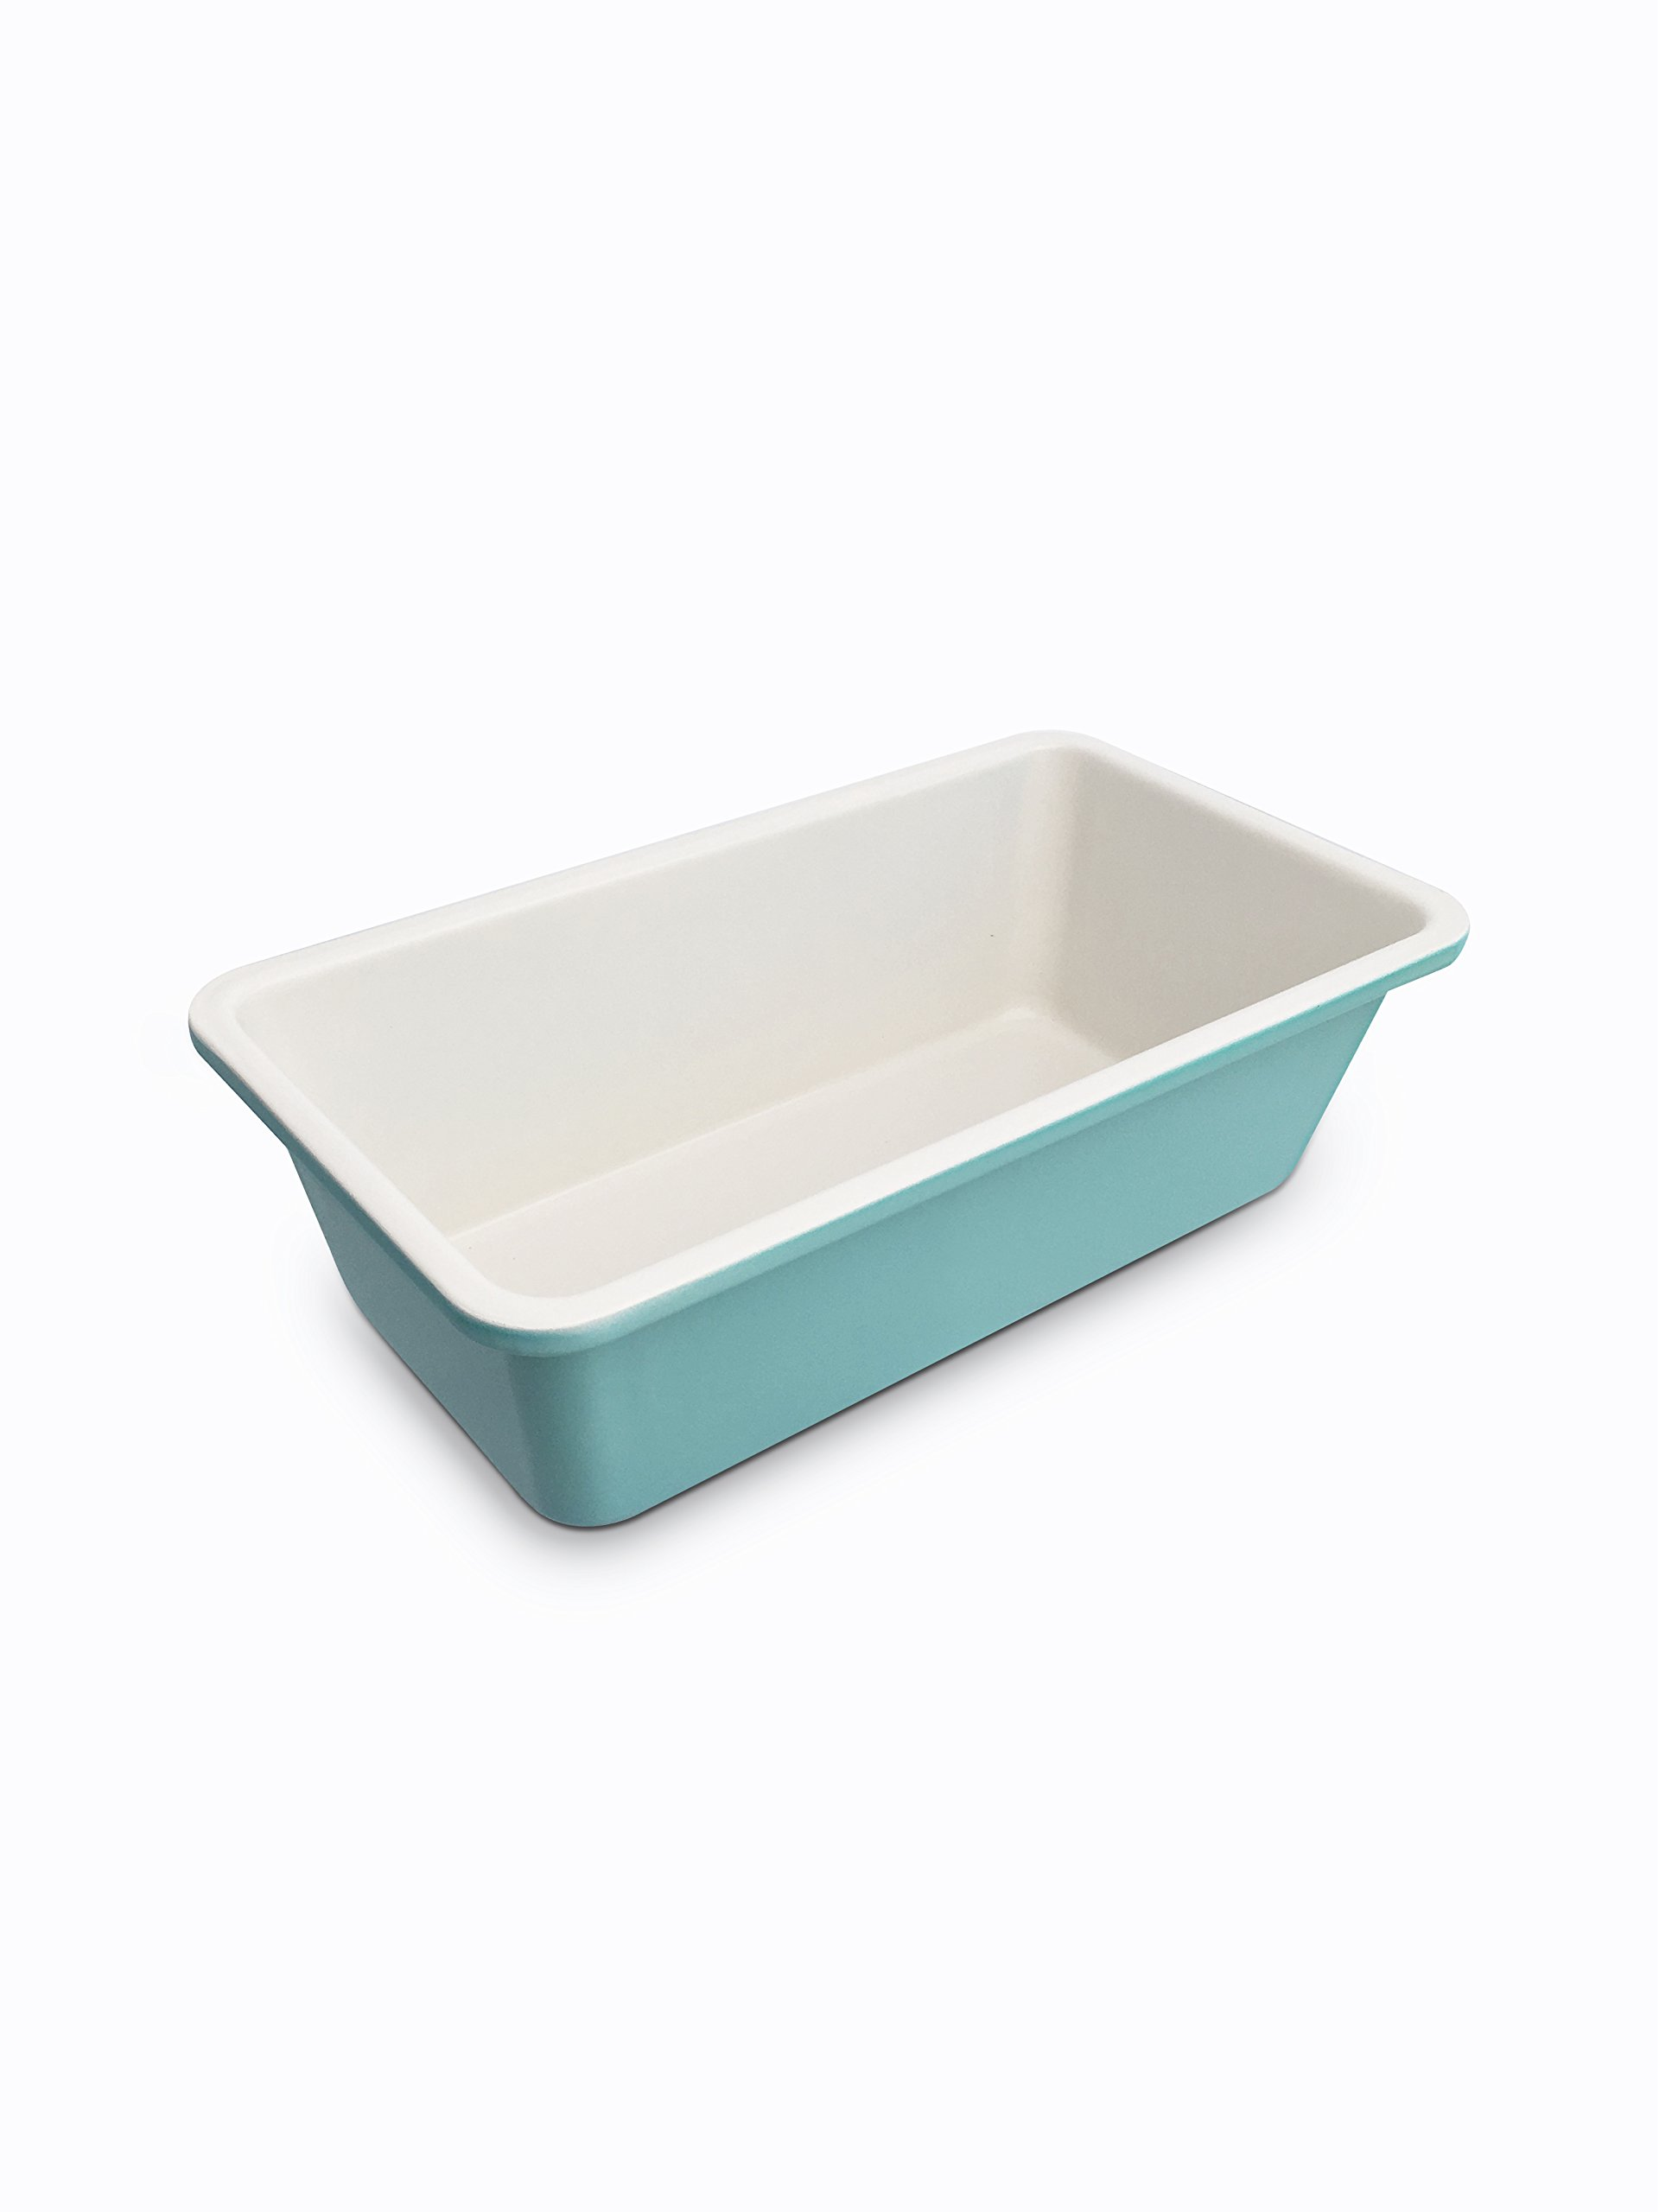 GreenLife Ceramic Non-Stick Loaf Pan, Turquoise by GreenLife (Image #5)